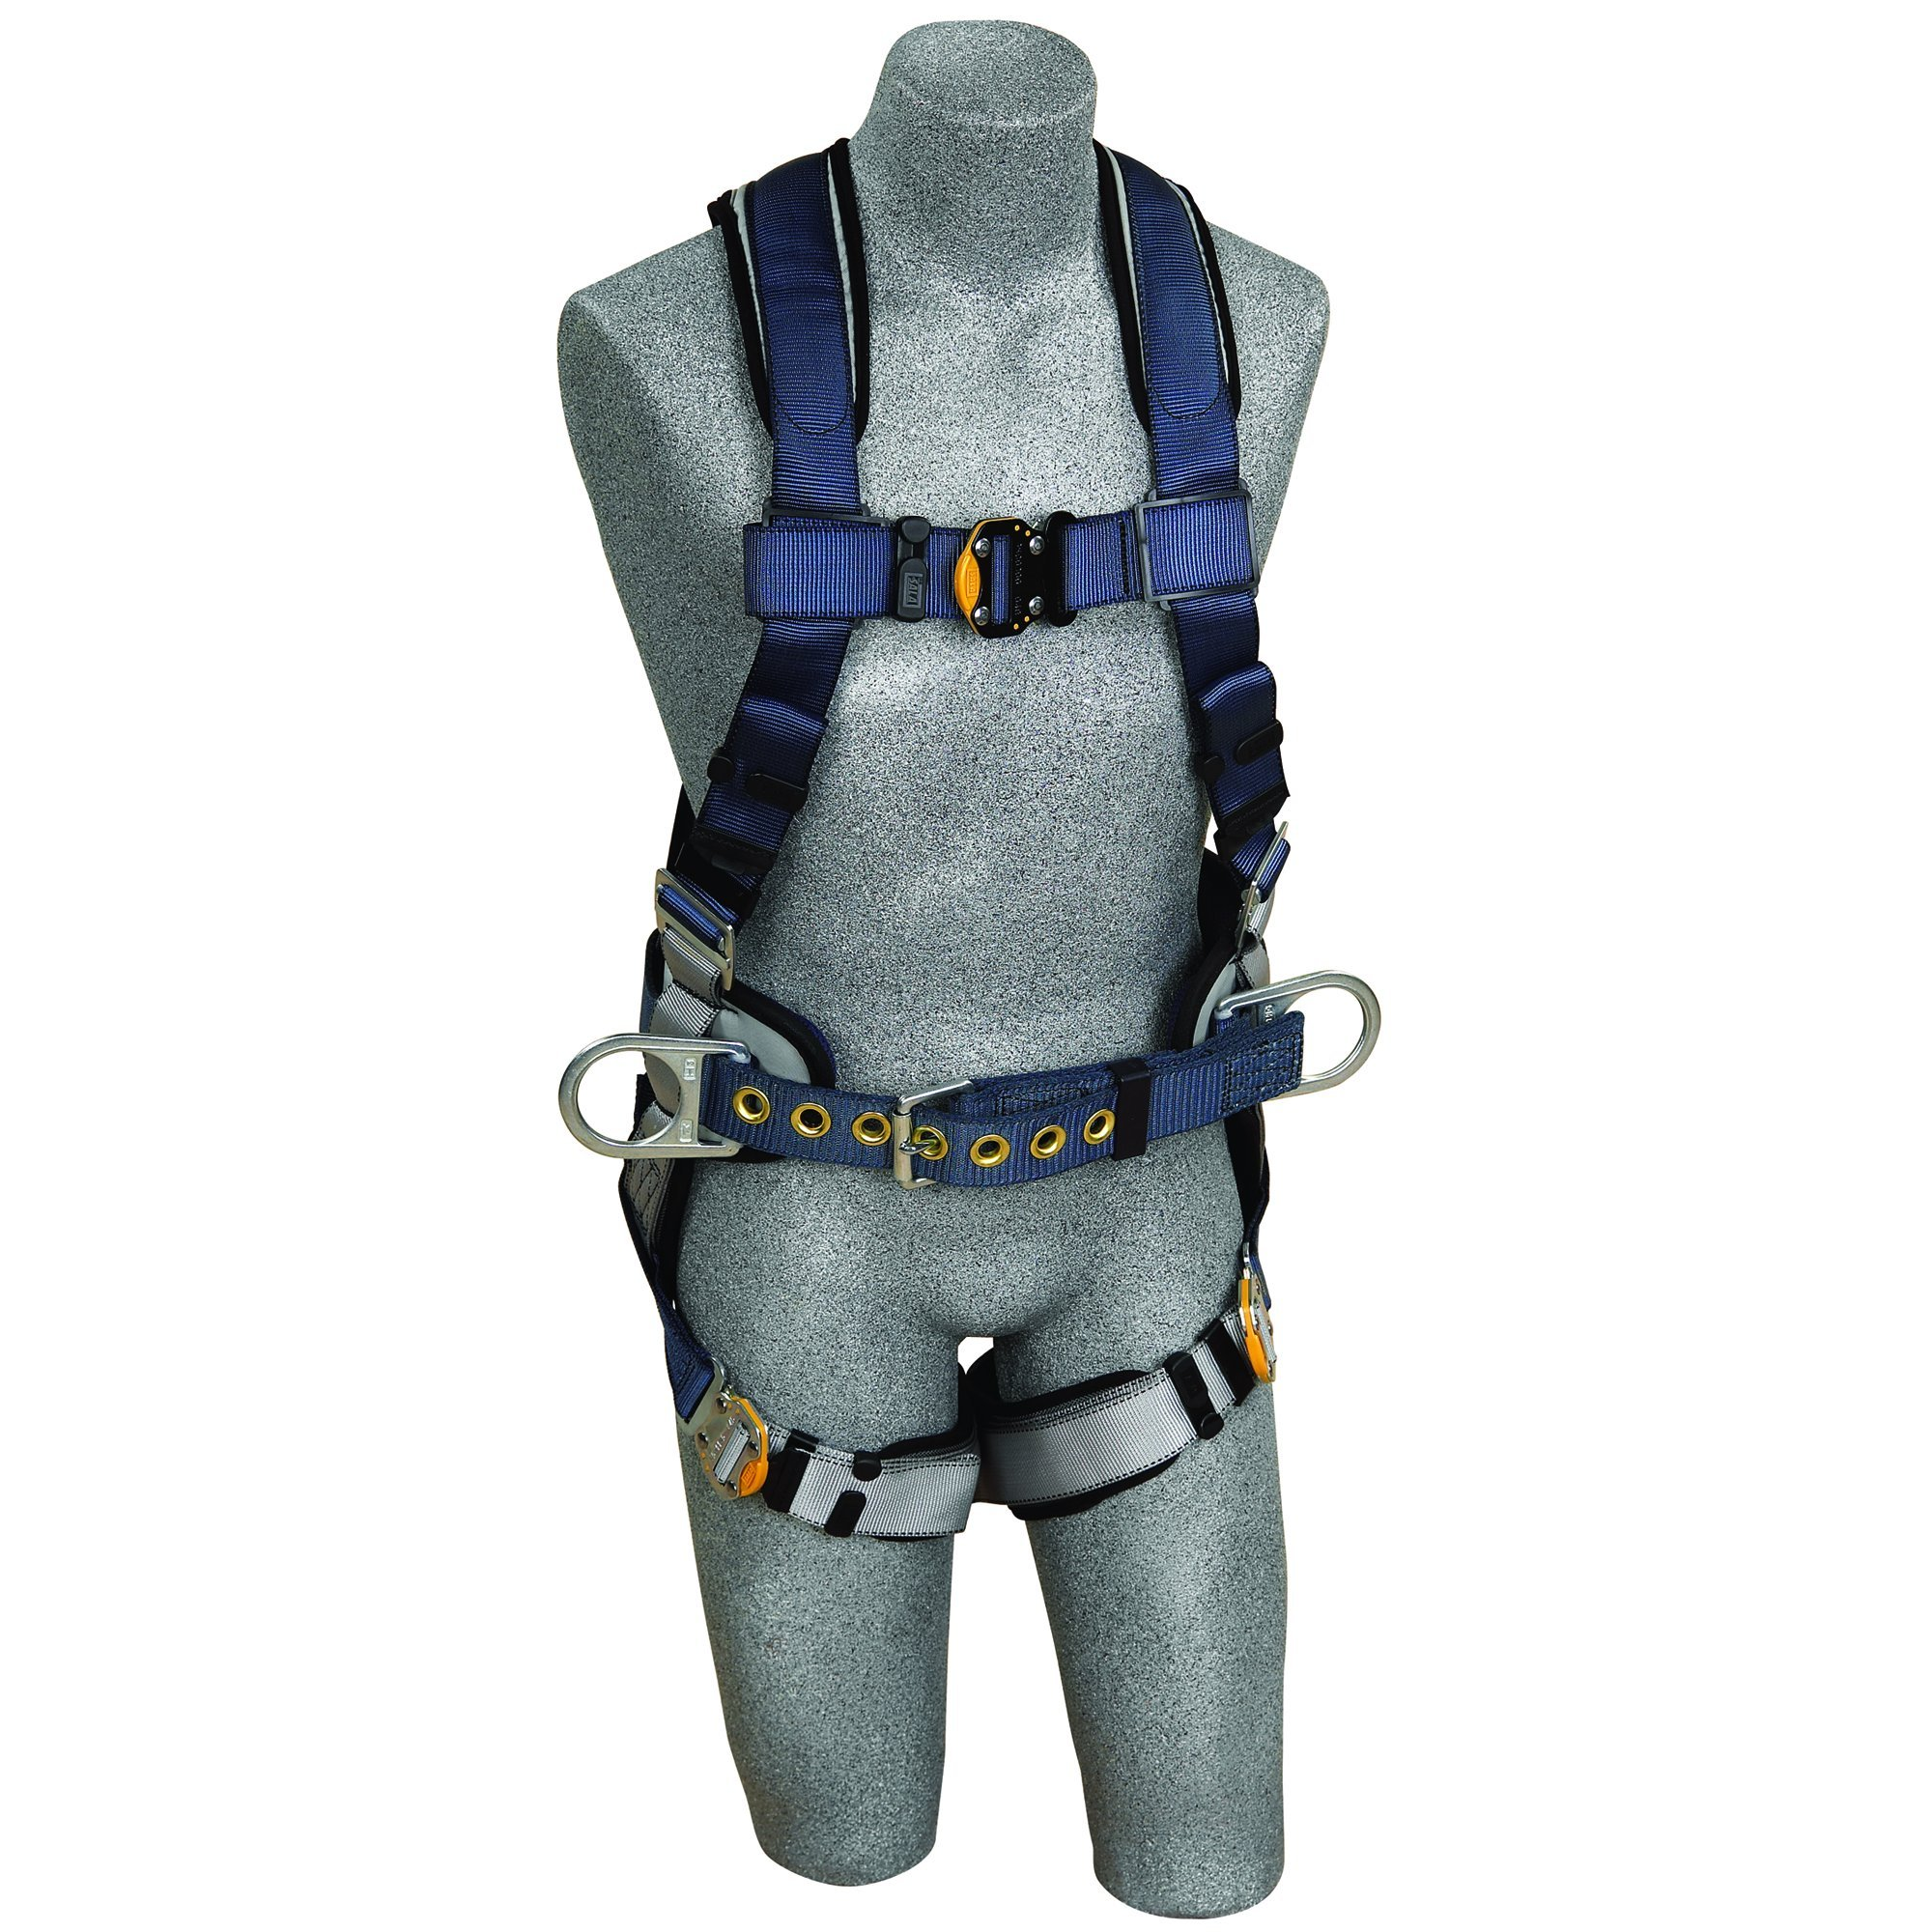 3M DBI-SALA ExoFit 1108500 Construction Harness, Back D-Ring, Sewn-In Back Pad & Belt w/Side D-Rings, Quick-Connect Buckles, Small, Blue/Gray by 3M Personal Protective Equipment